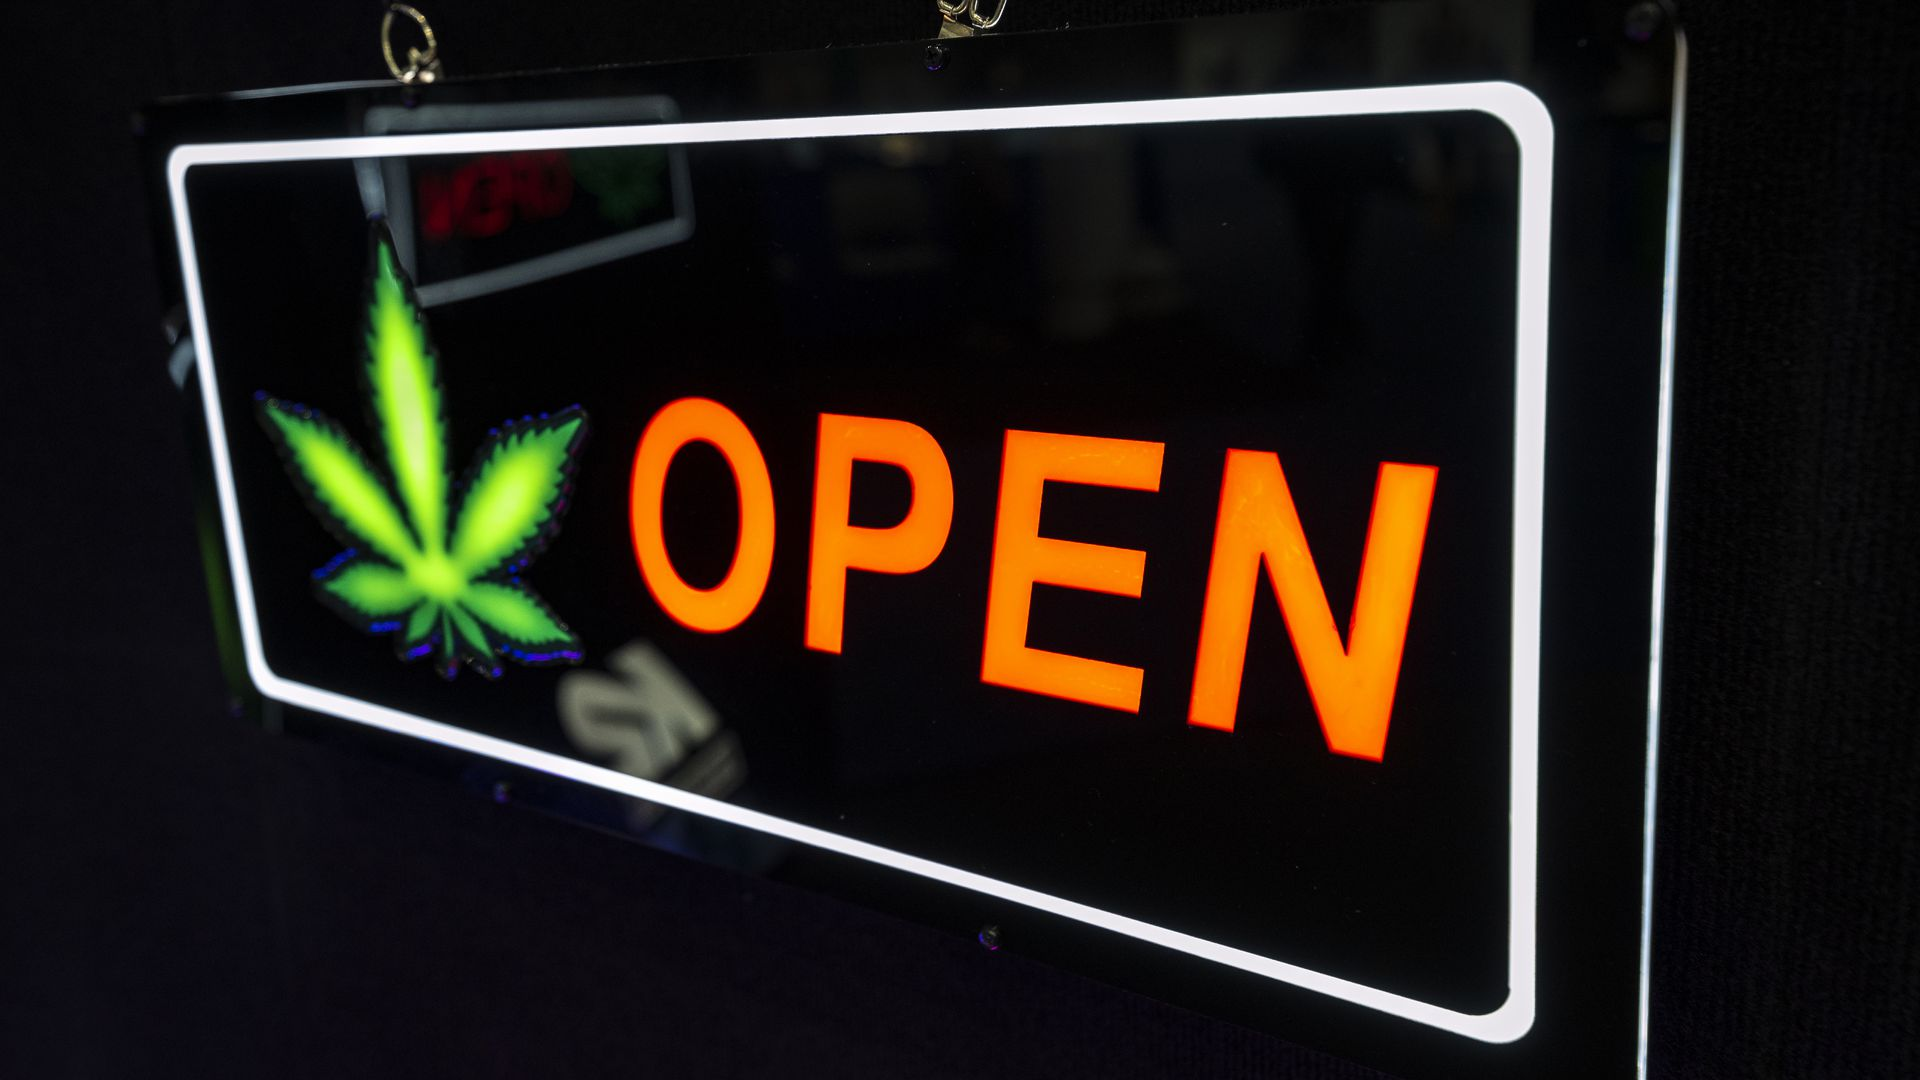 An open side with a neon marijuana leaf